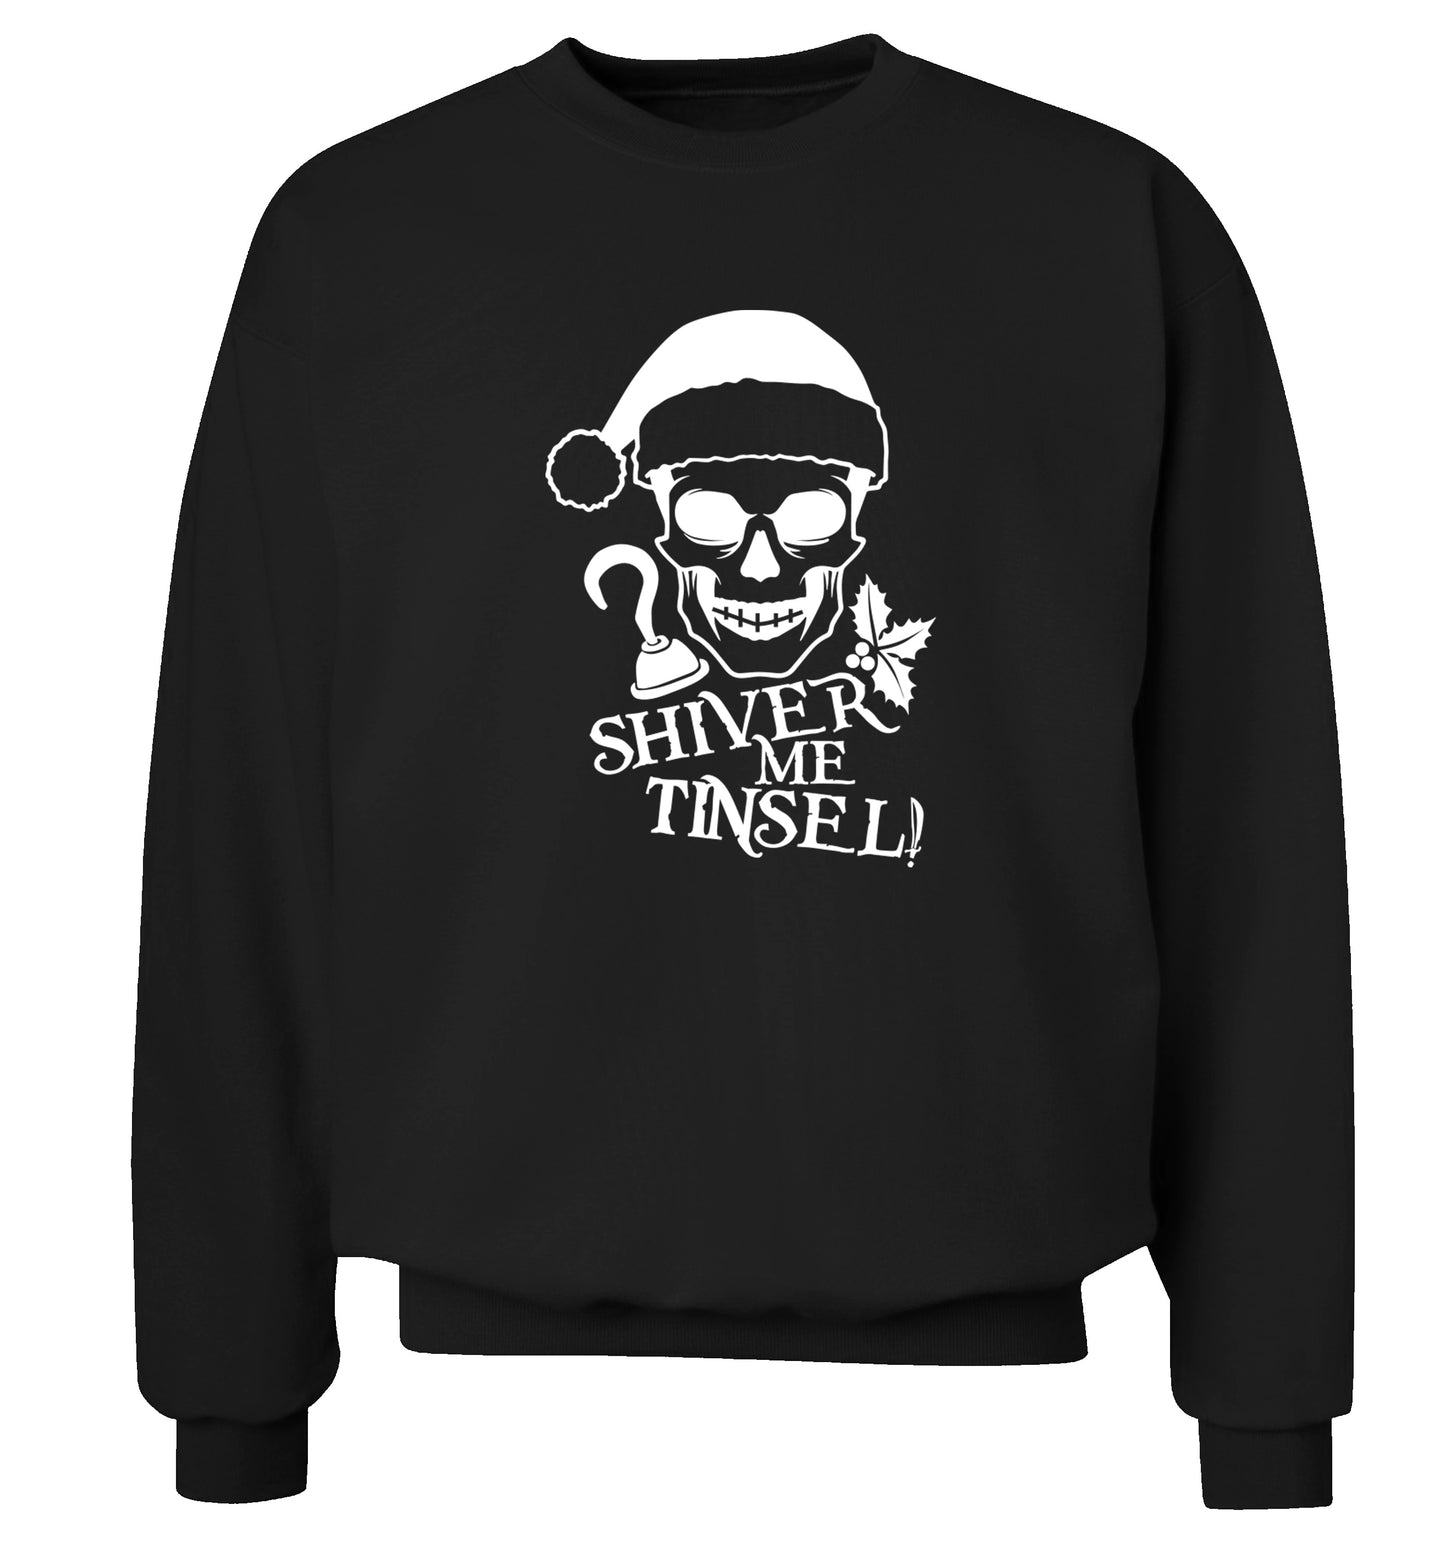 Shiver me tinsel Adult's unisex black Sweater 2XL